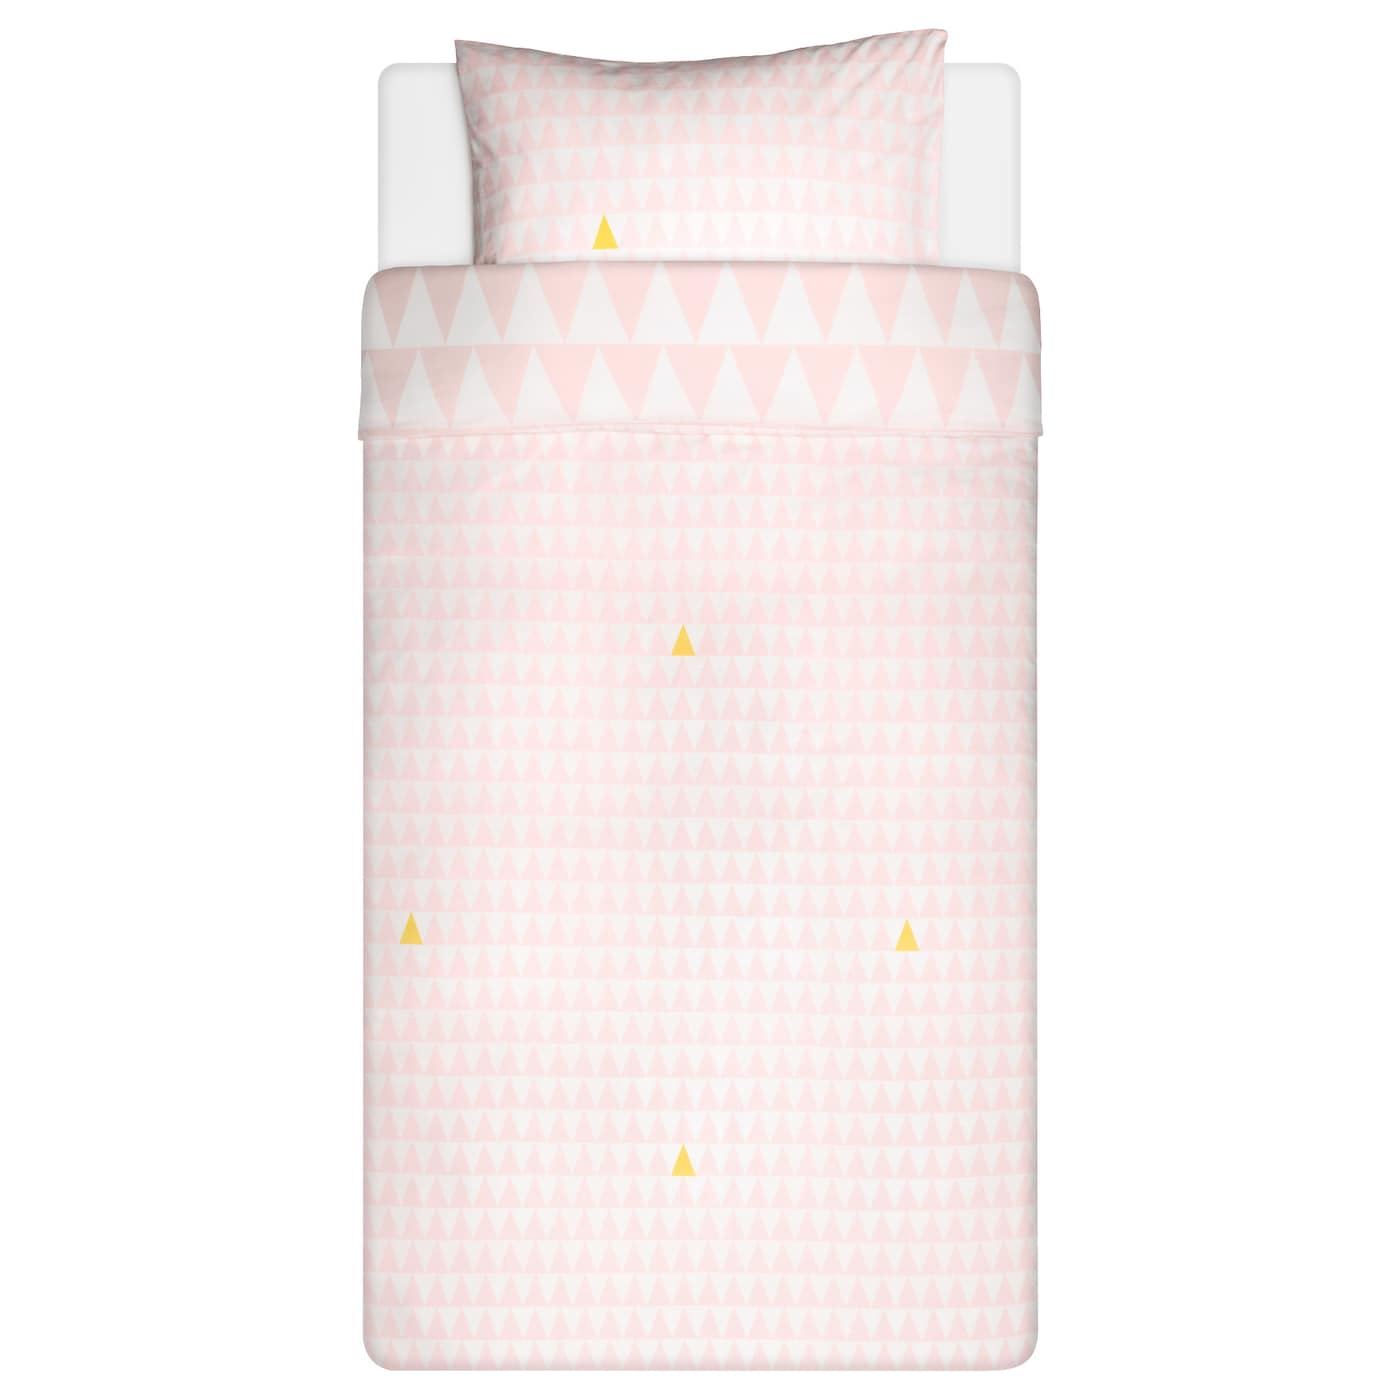 IKEA STILLSAMT quilt cover and pillowcase Cotton, soft and nice against your child's skin.